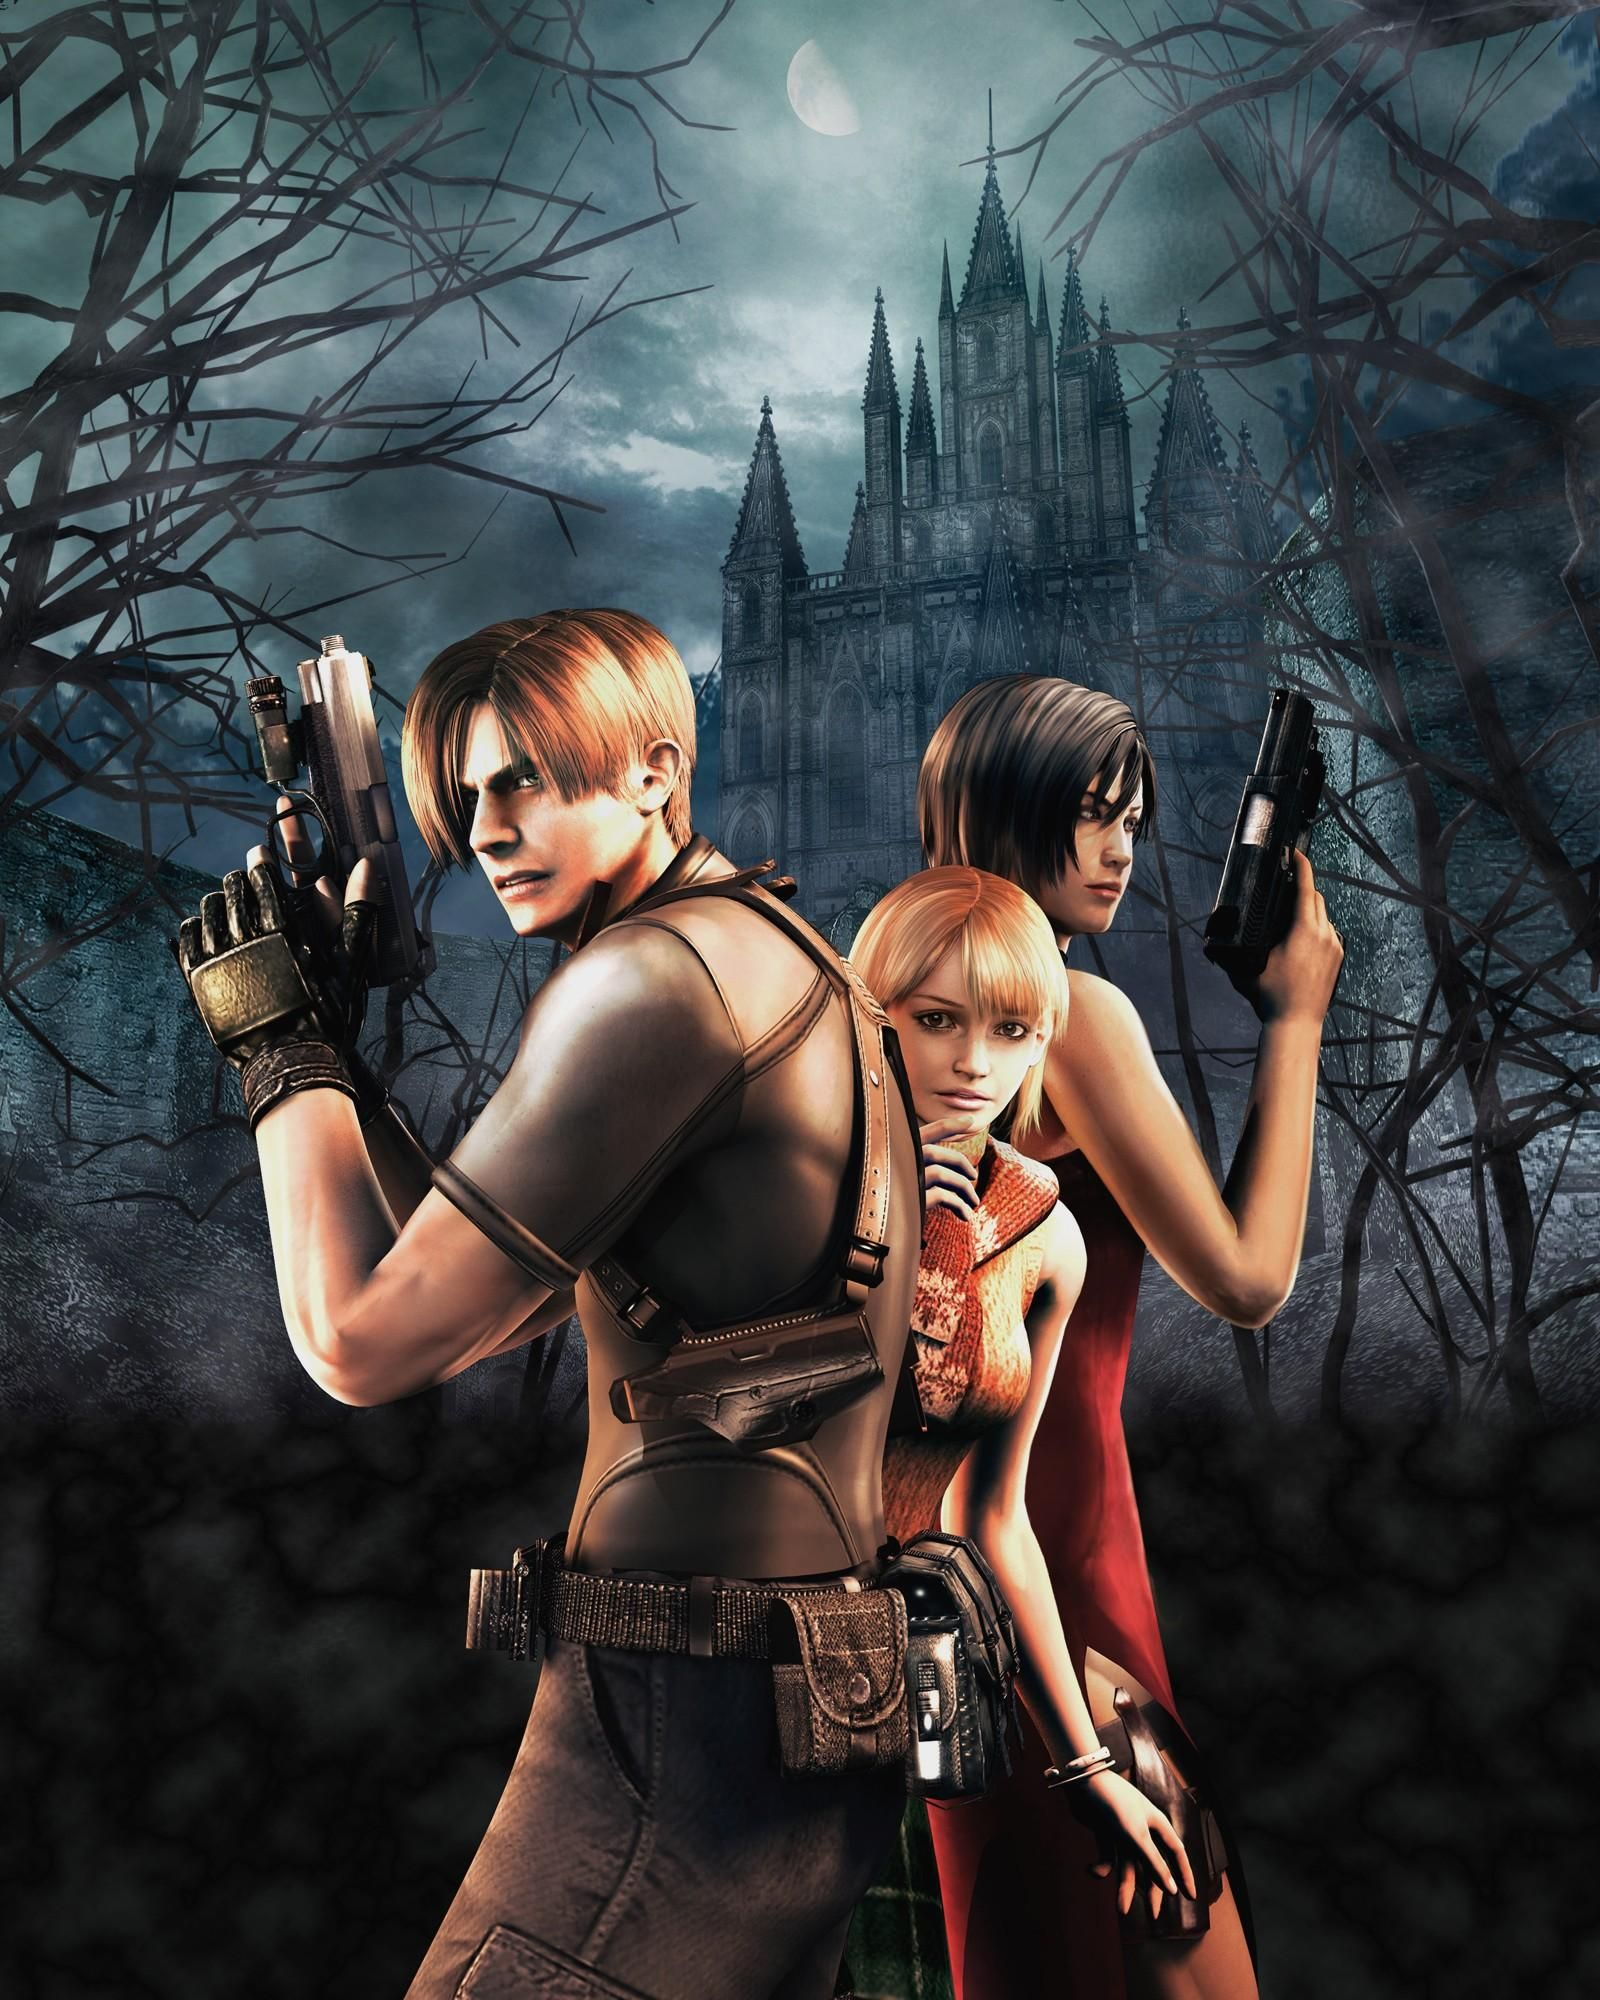 resident evil 4 wallpapers hd download   epic car wallpapers